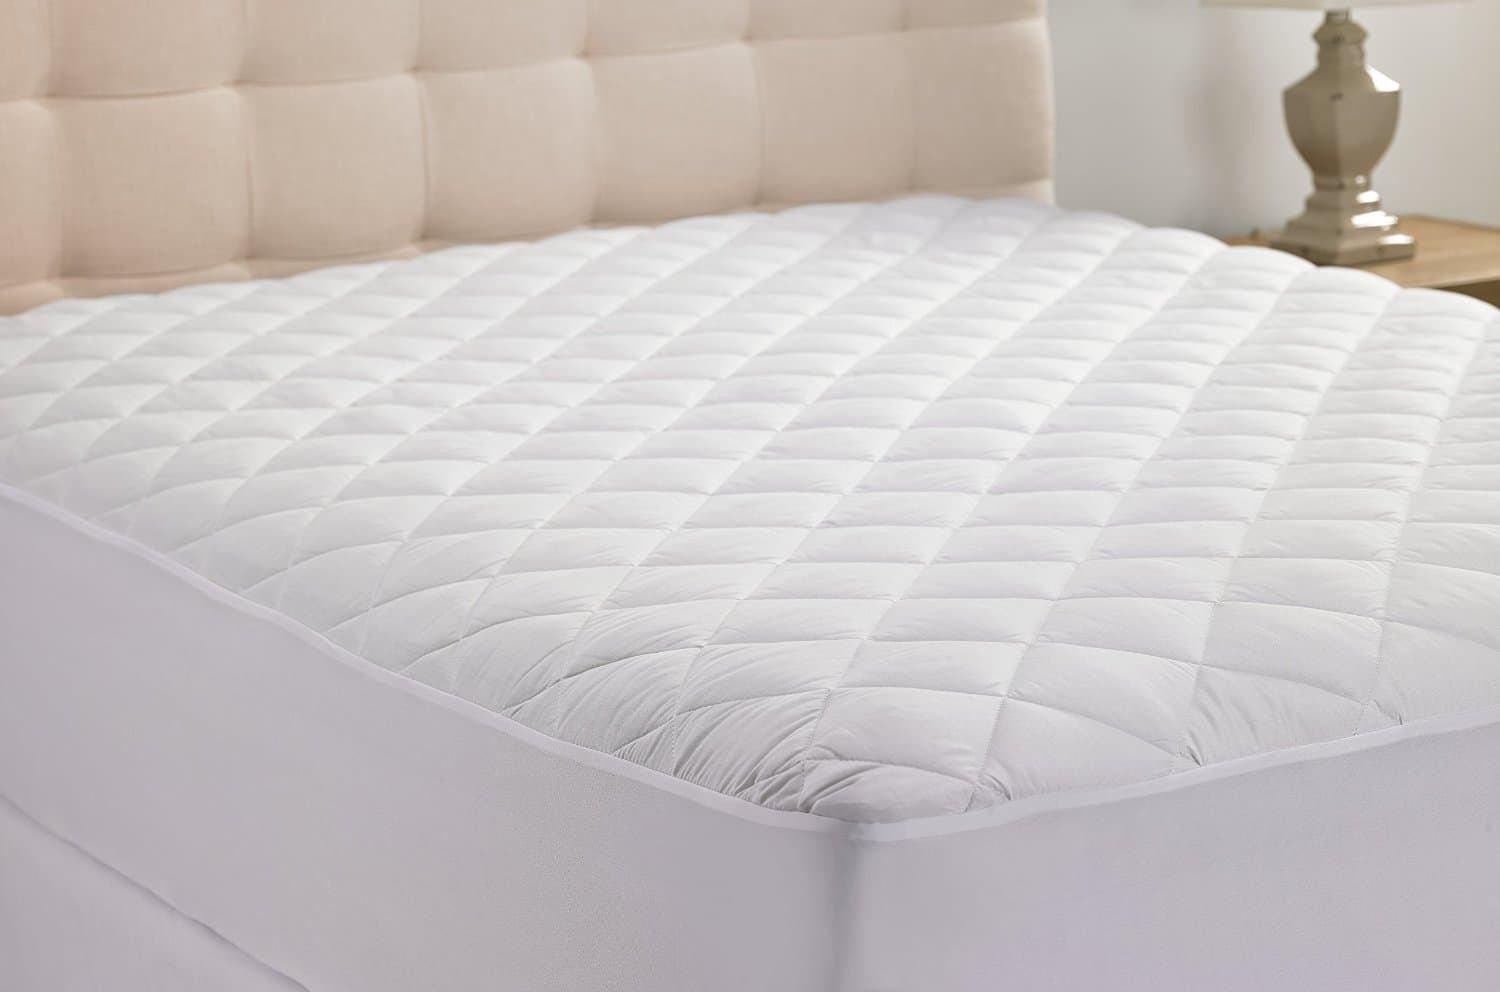 3 Best King Mattress Pads Reviewed By Amazon Customers